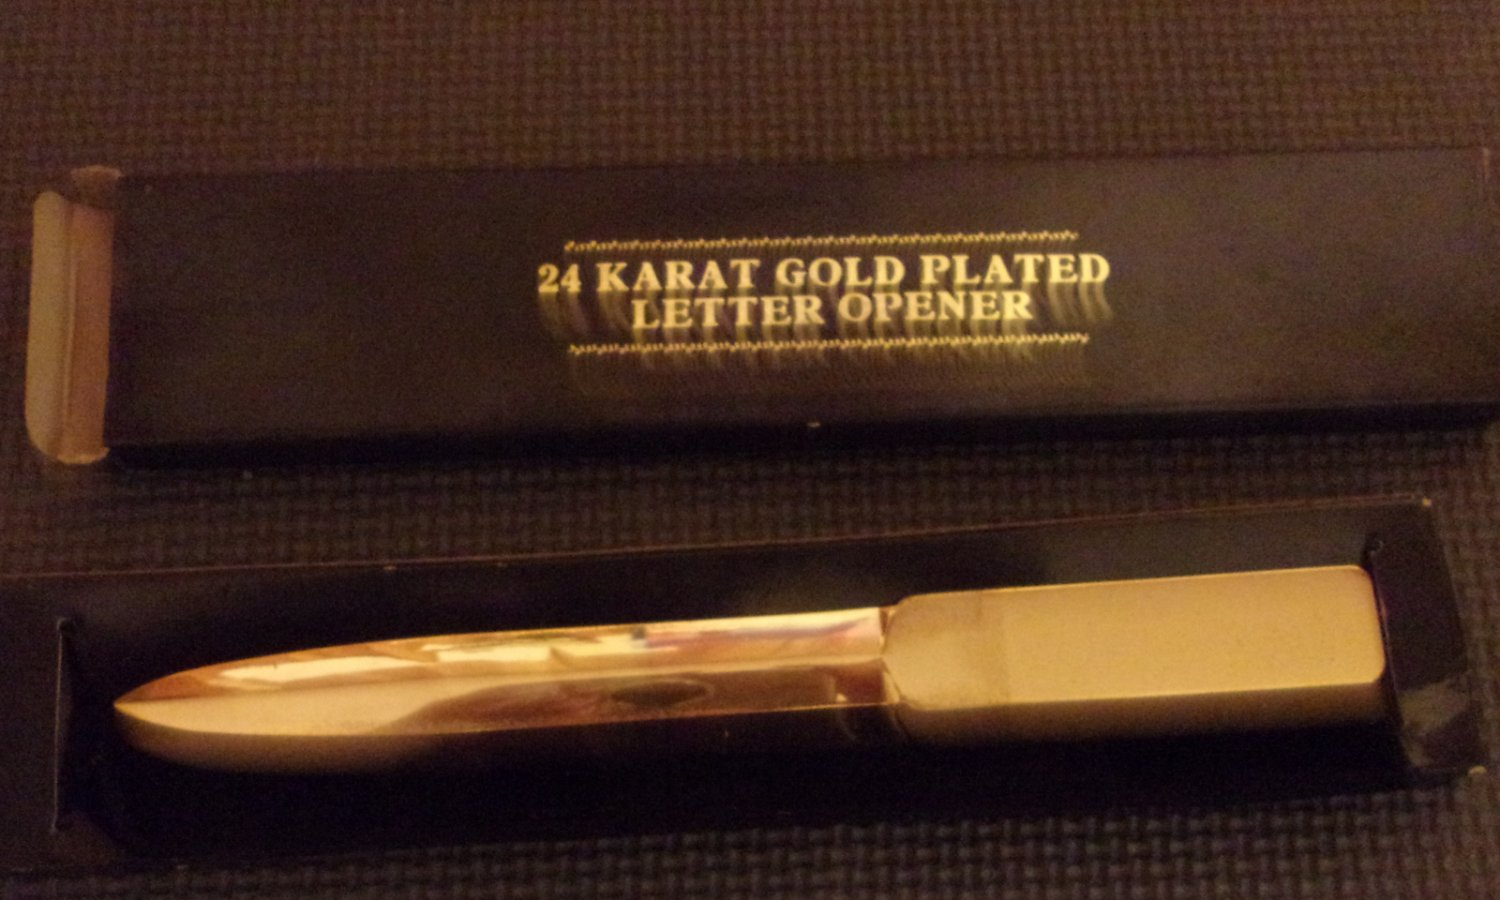 24 Karat Gold Plated Letter Opener with protective sleeve